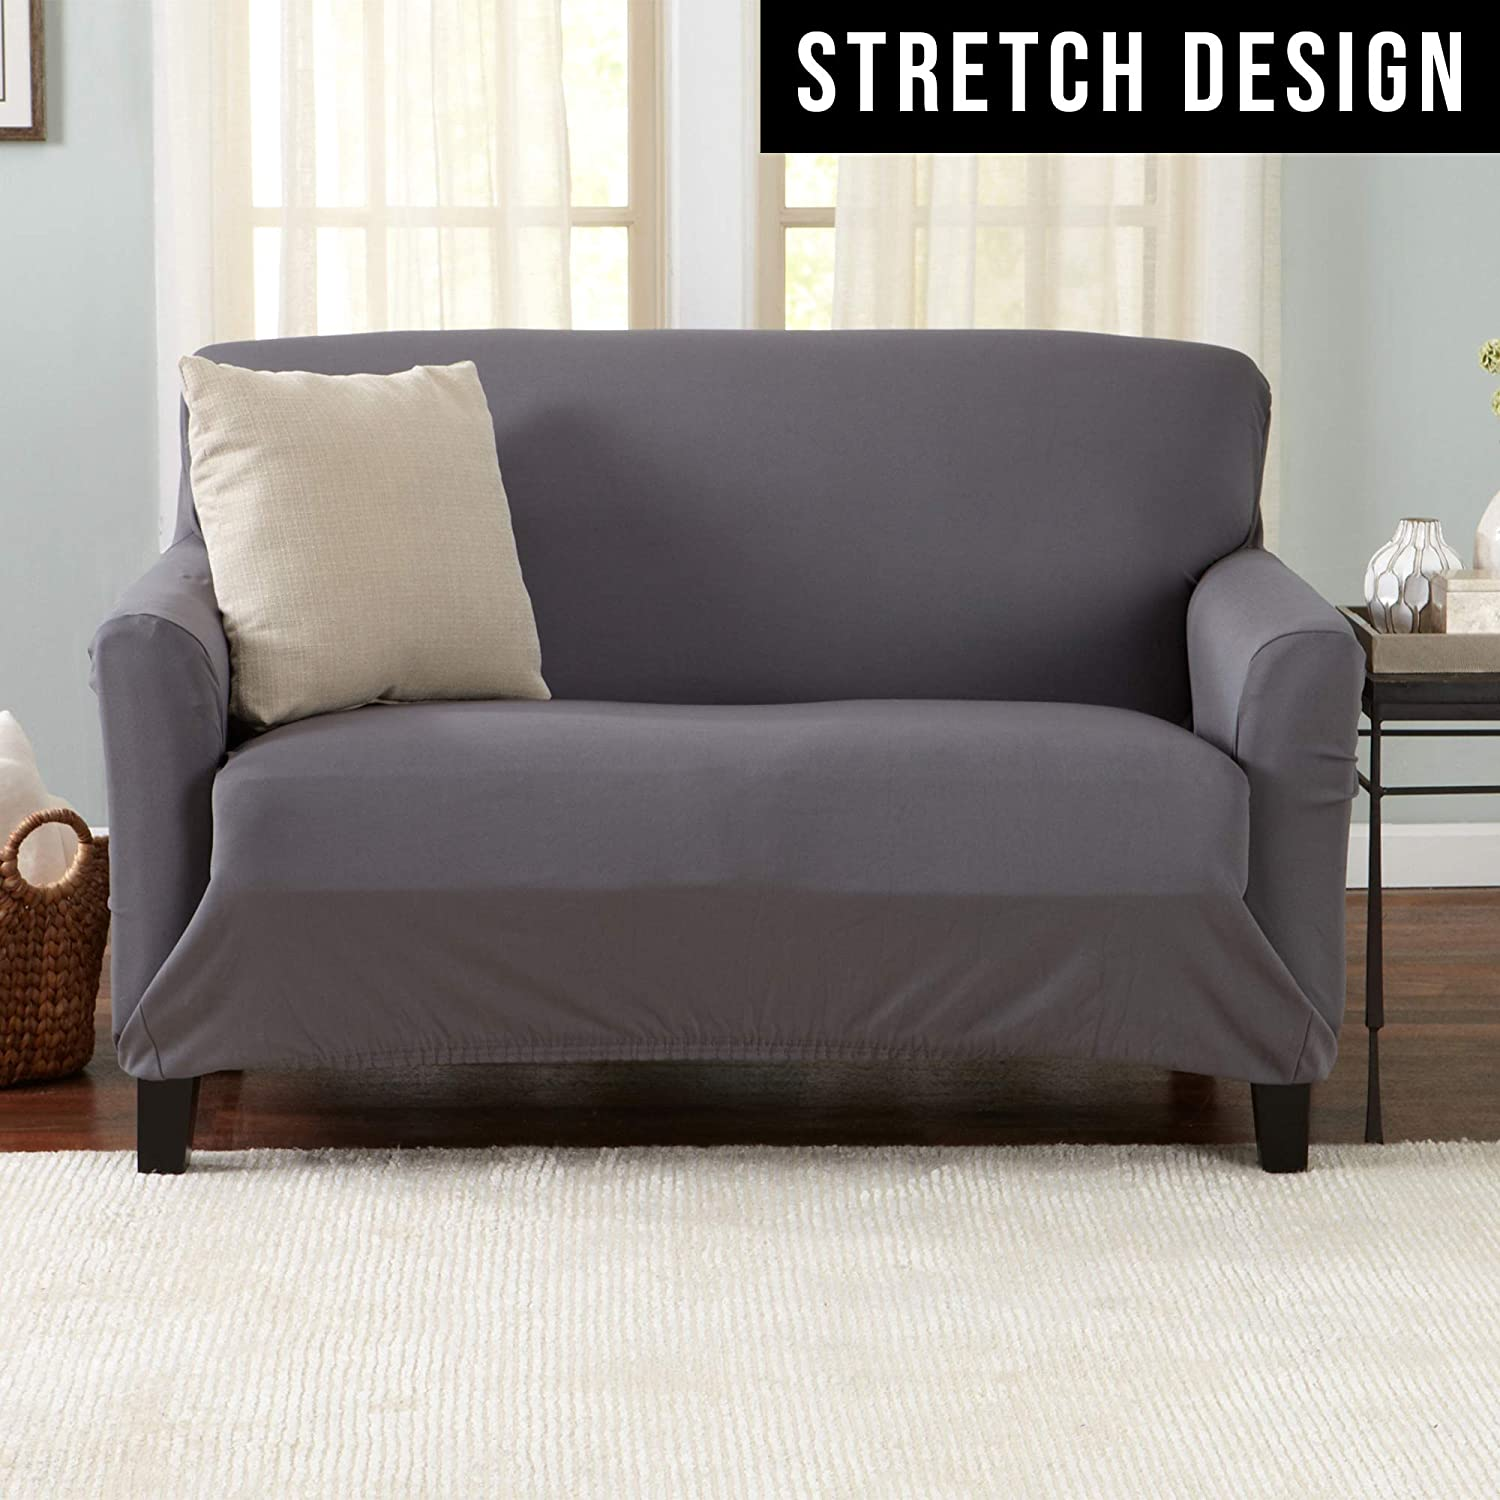 Home Fashion Designs Printed Twill Love Seat Slipcover One Piece Stretch Loveseat Cover Strapless Love Seat Cover for Living Room Love Seat, Smoke Blue Brenna Collection Slipcover./